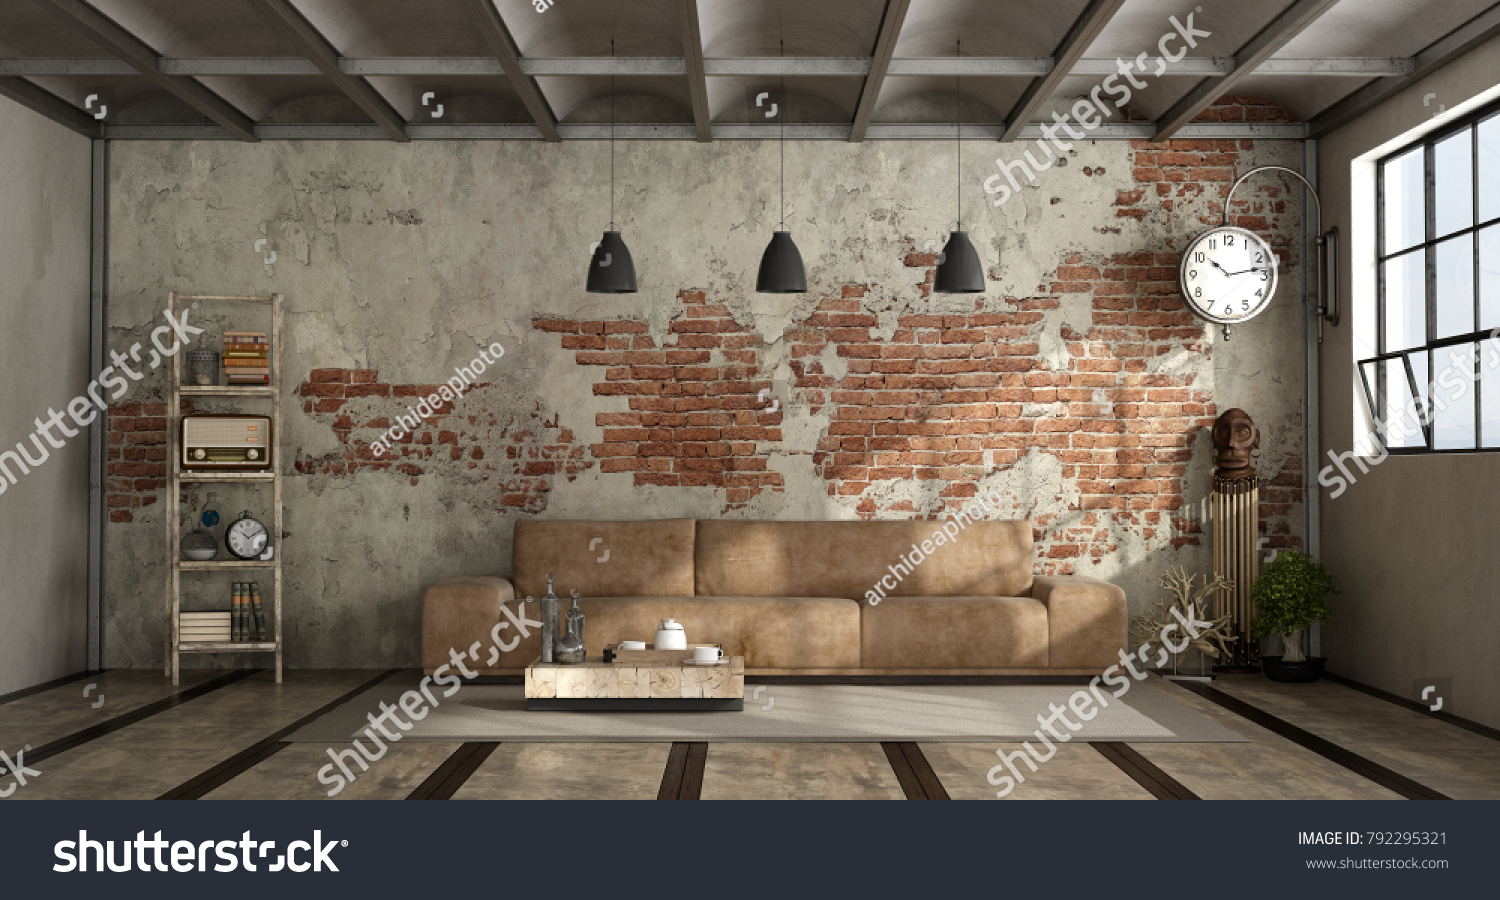 industrial style living room furniture. Living Room In Industrial Style With Leather Sofa And Brick Wall - 3d Rendering Furniture R